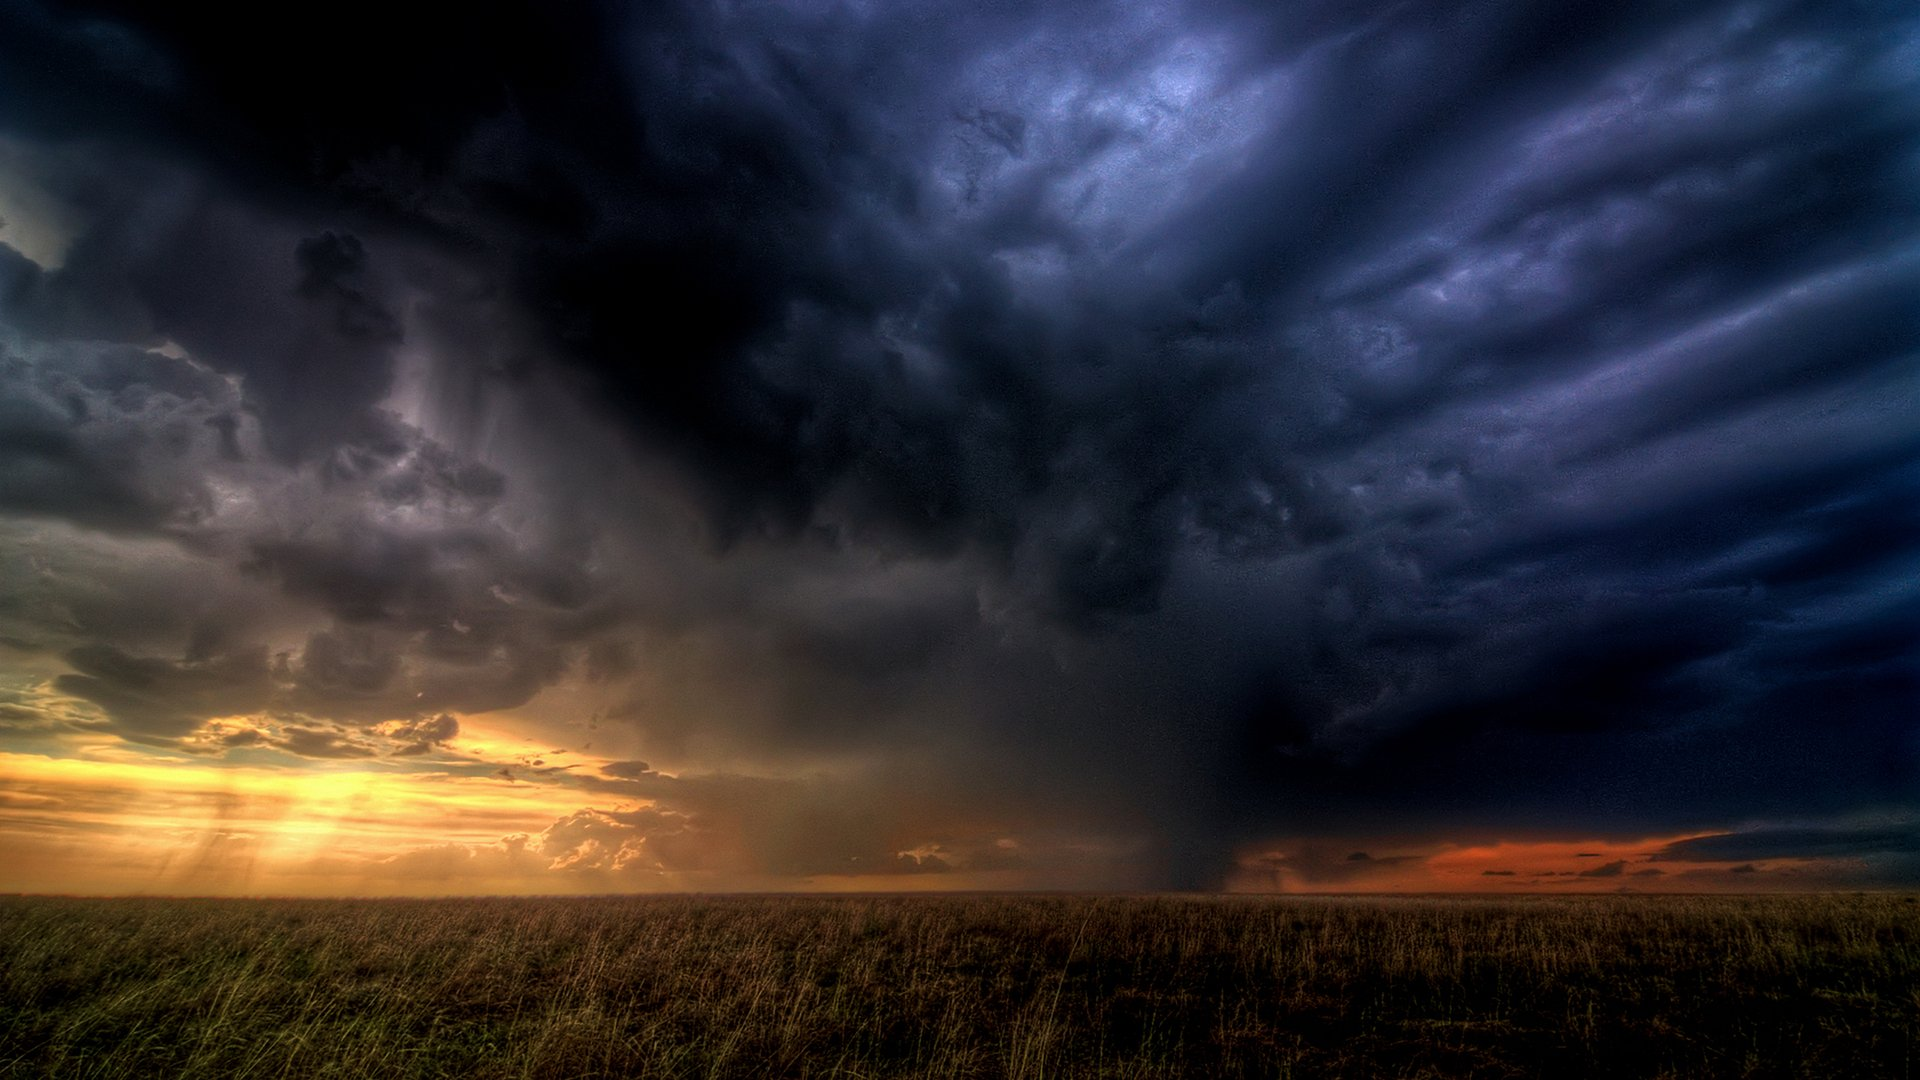 """Download the following Storm Clouds Wallpaper 29522 by clicking the orange button positioned underneath the """"Download Wallpaper"""" section."""